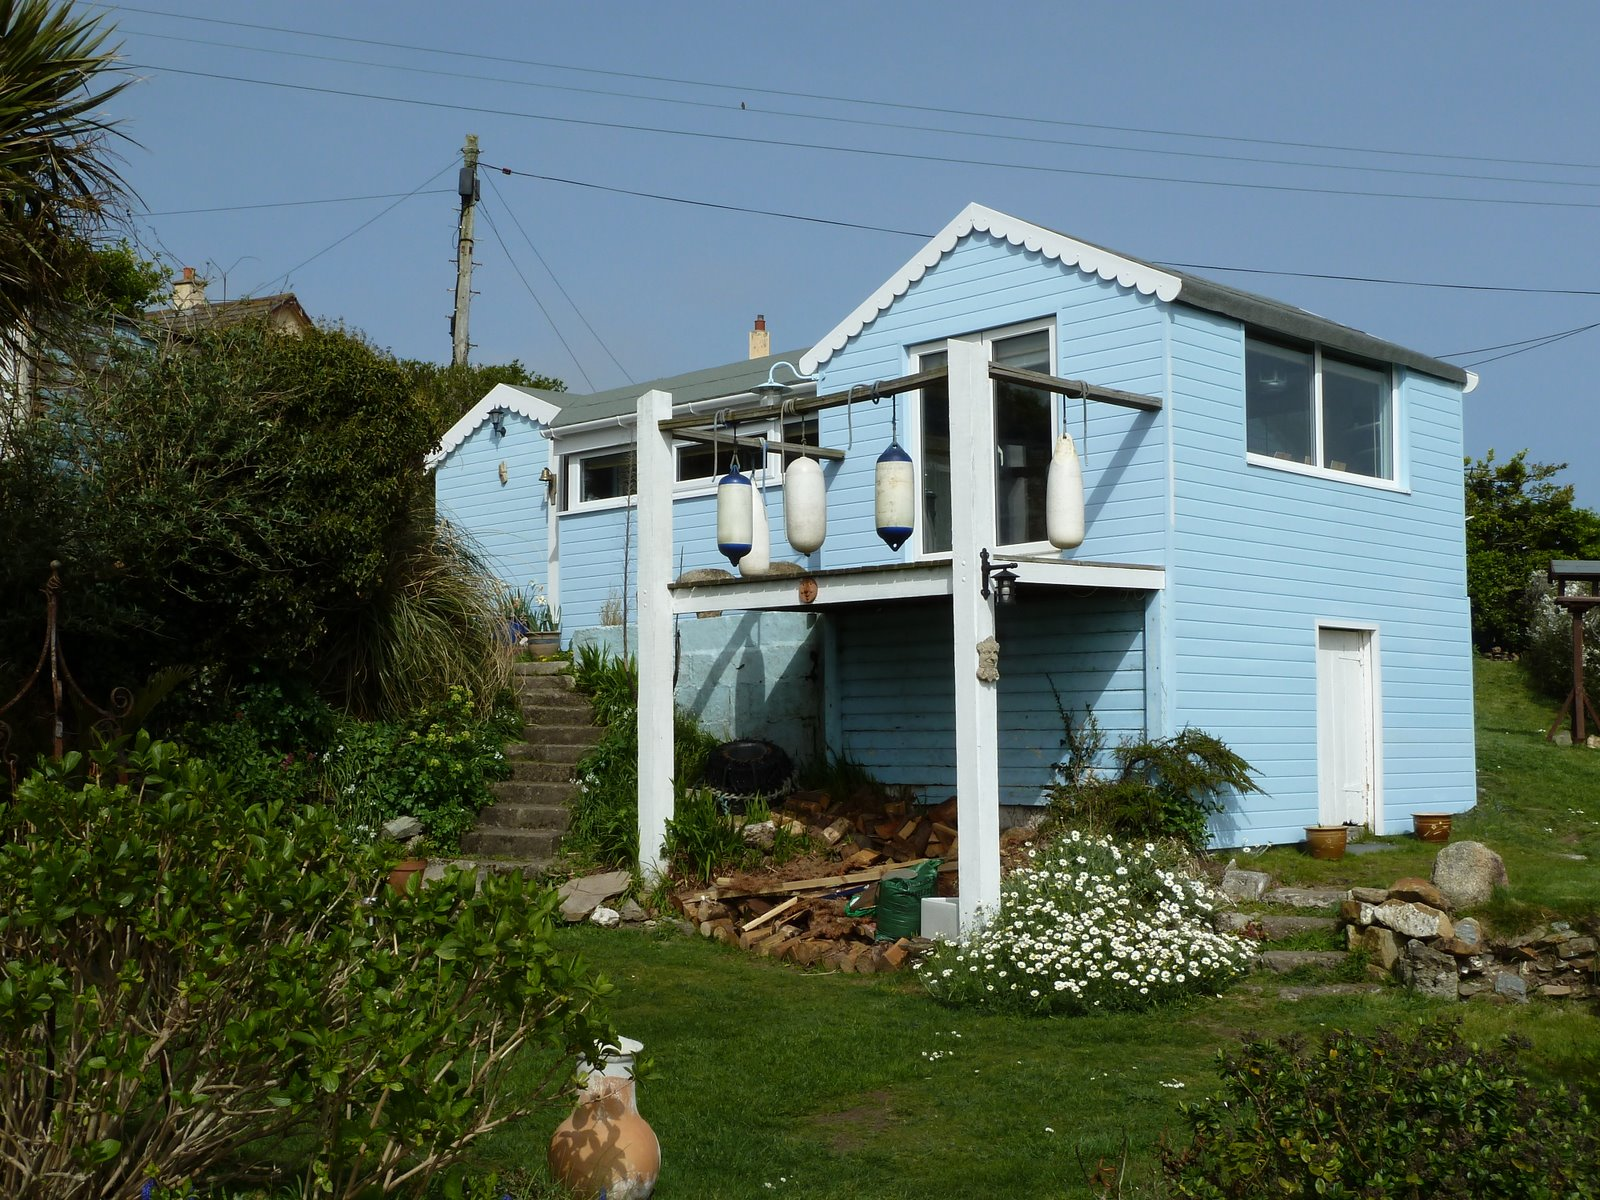 Cornish Holiday Investment Property For Sale Cornwall